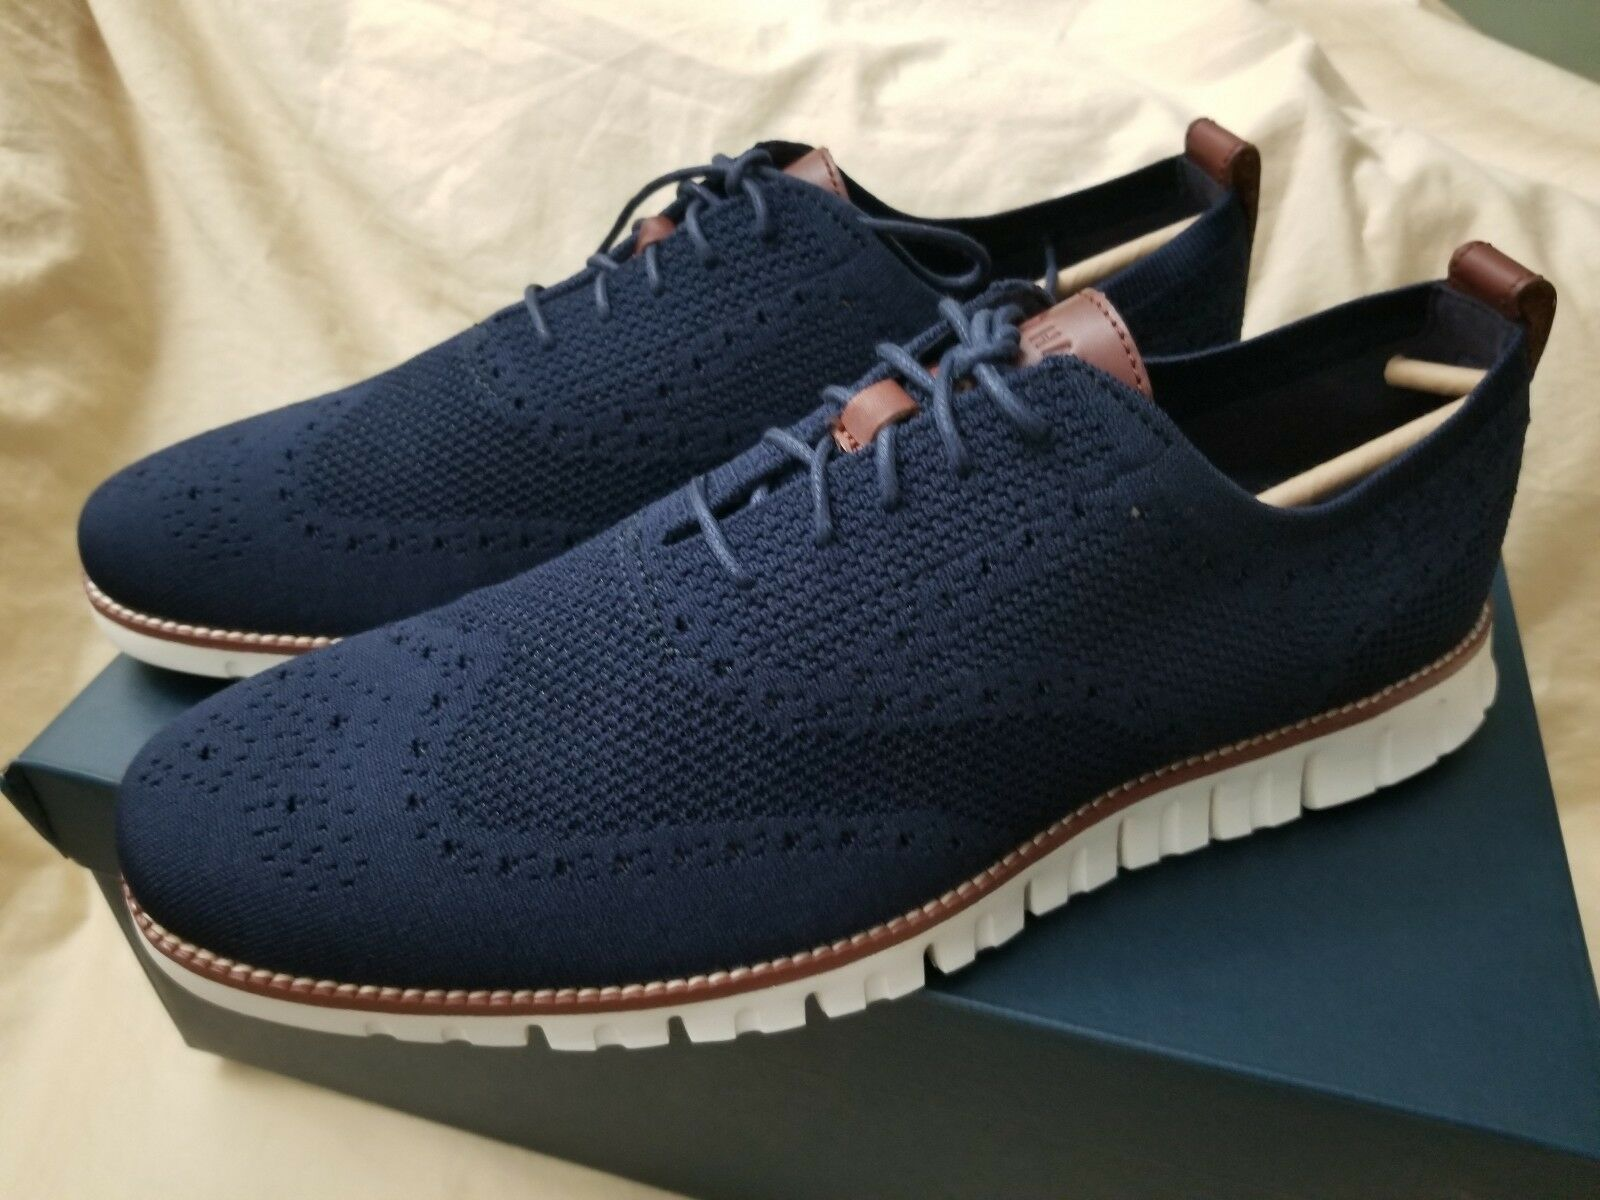 Cole Haan zerogrand stitchlite  oxford in marine blue and ivory Uomo size 13